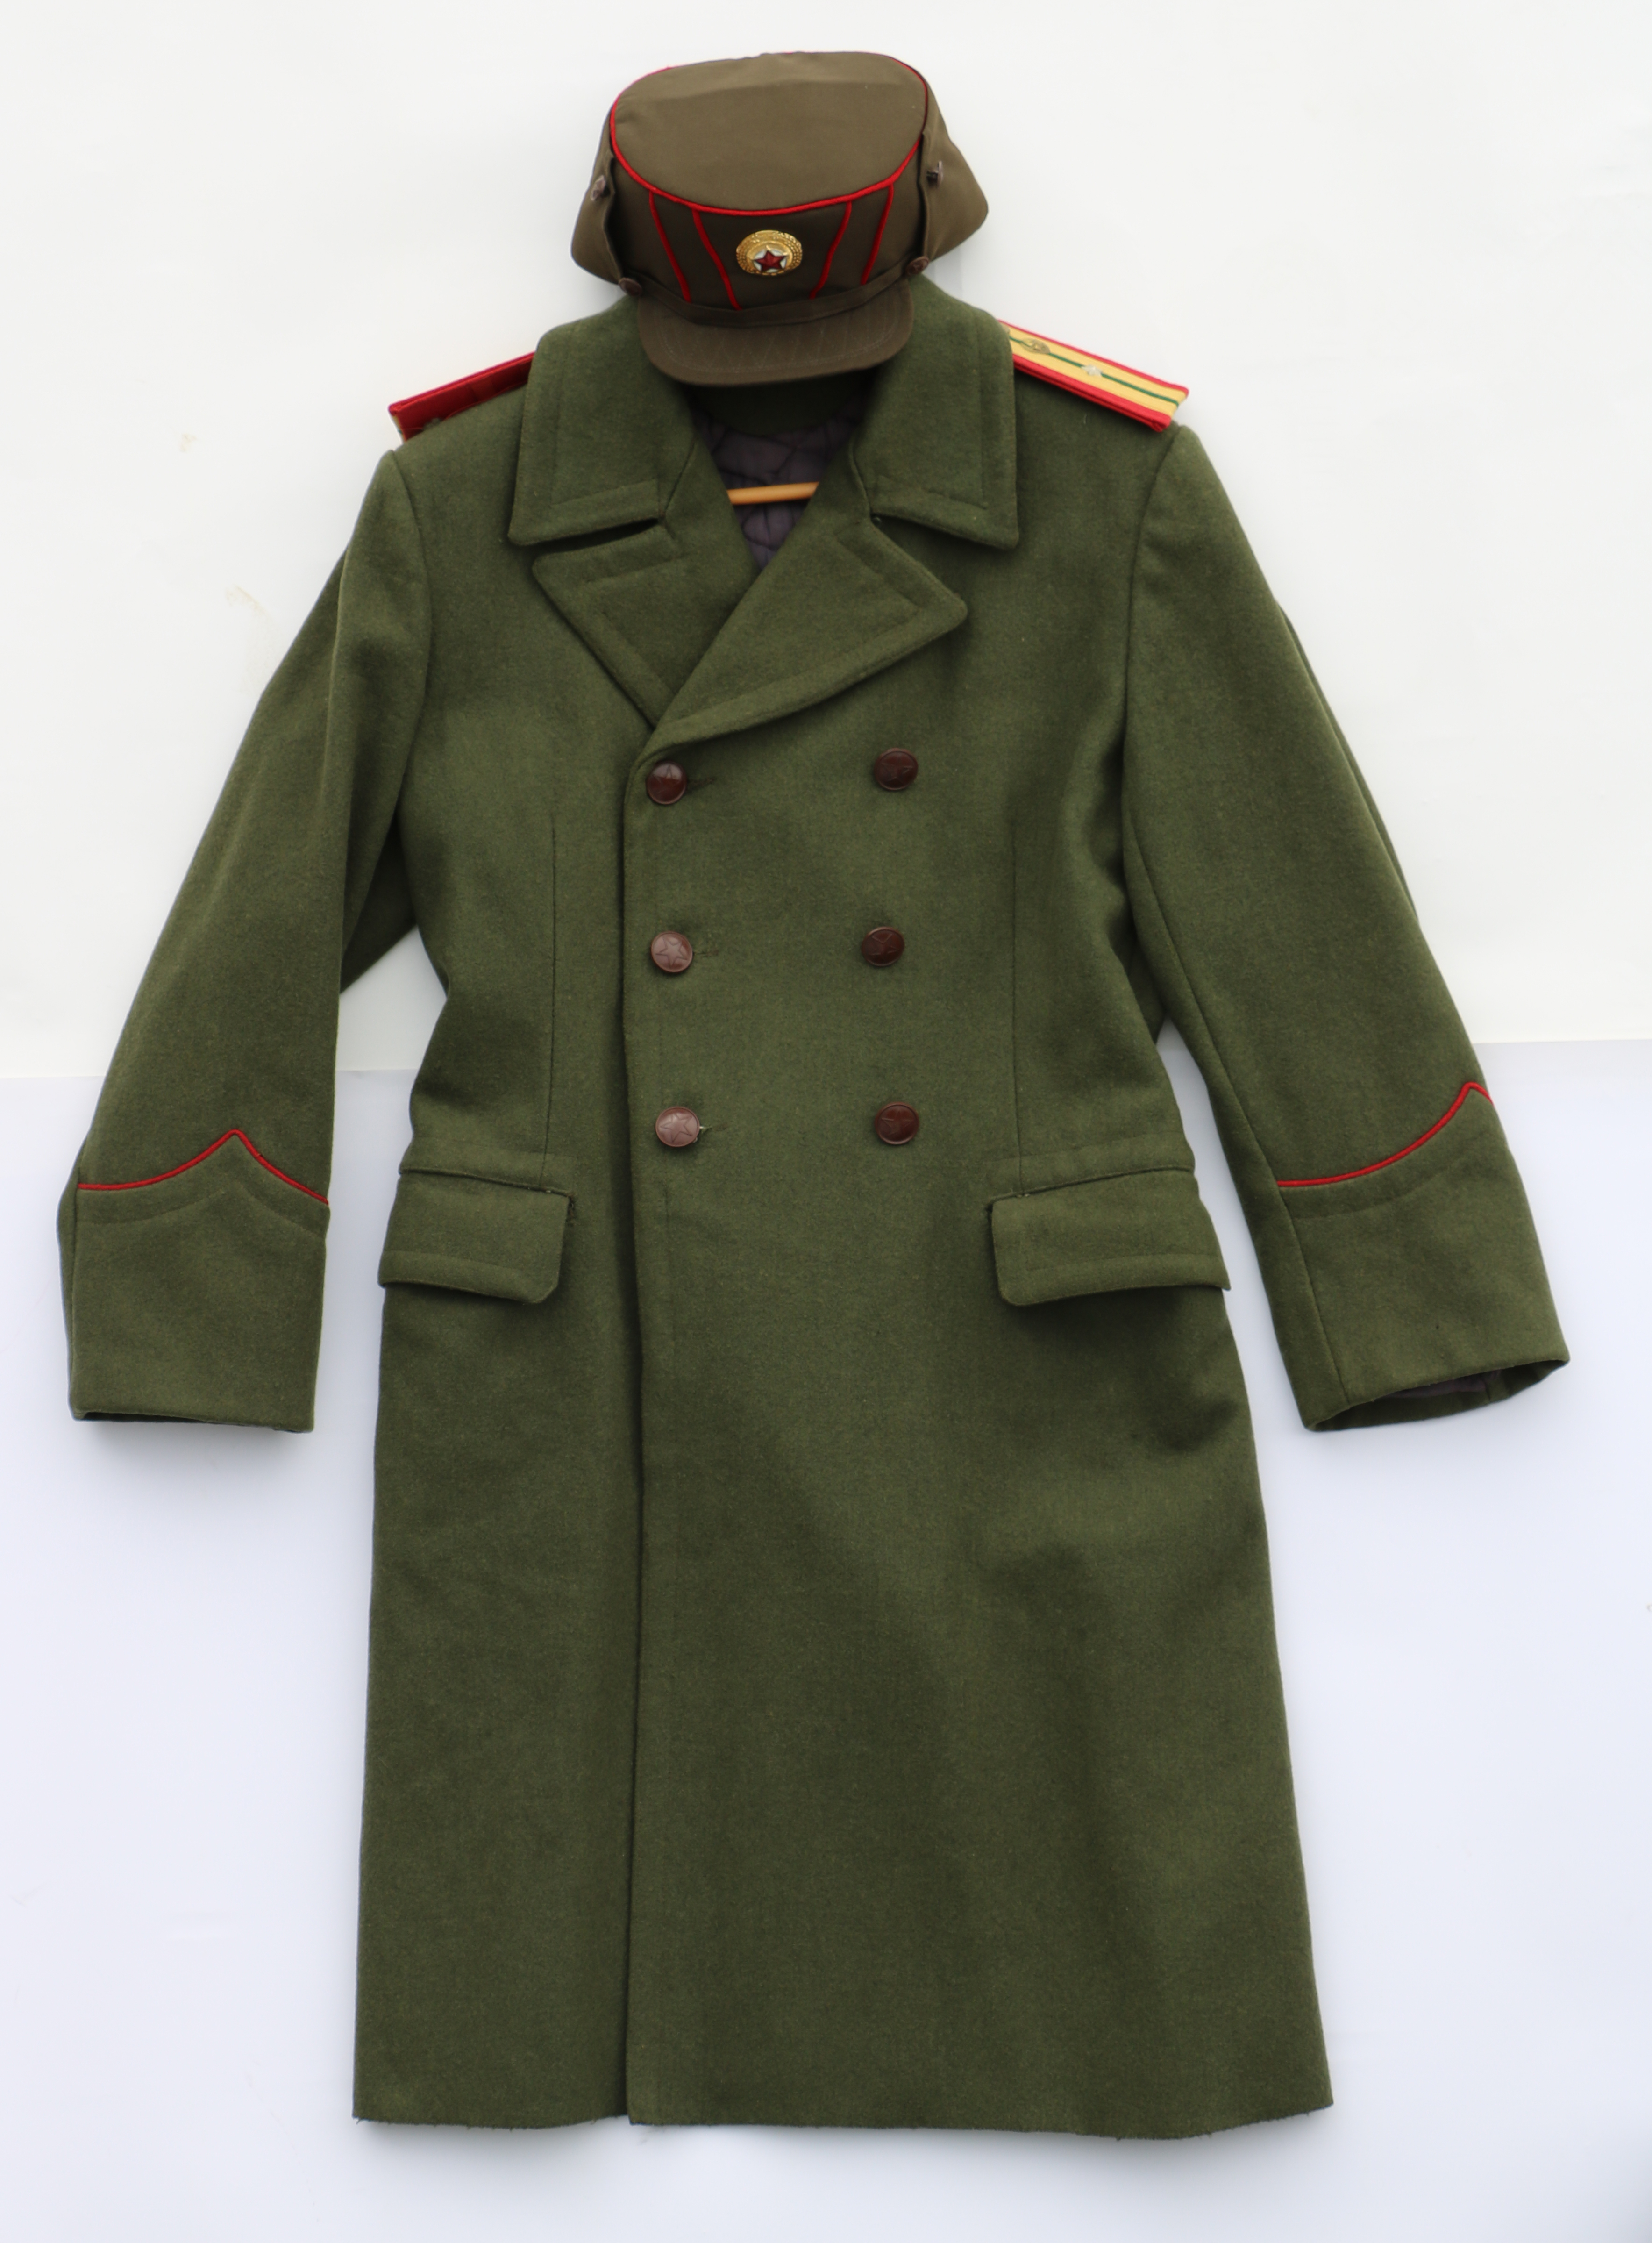 Army Winter Coat with Chinese Shoulderboards